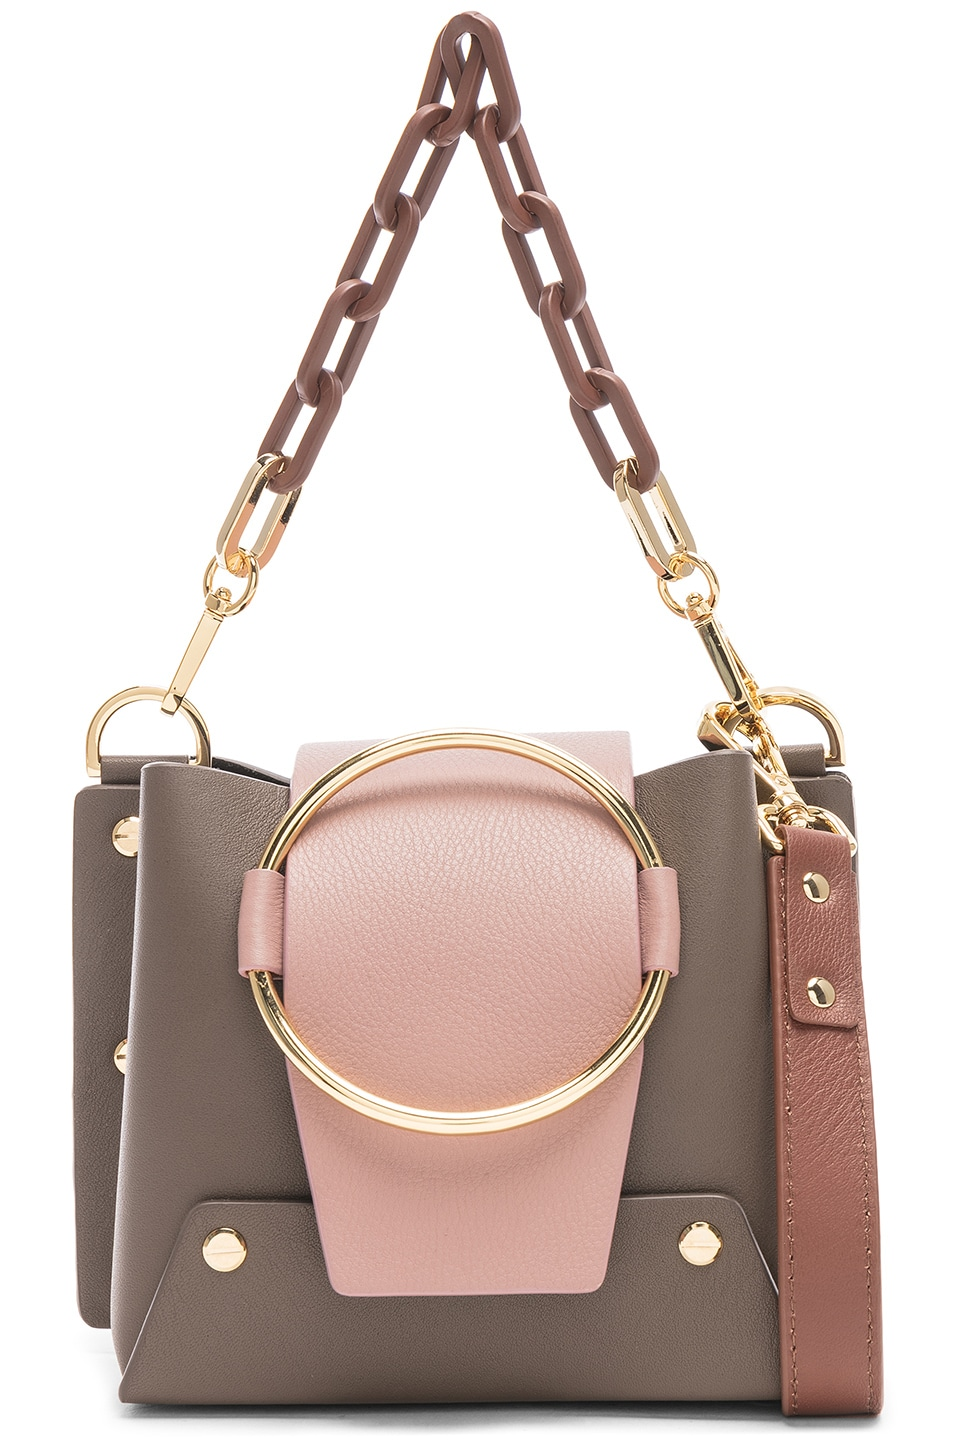 Image 1 of Yuzefi Mini Delila Bag in Bruciato & Taupe